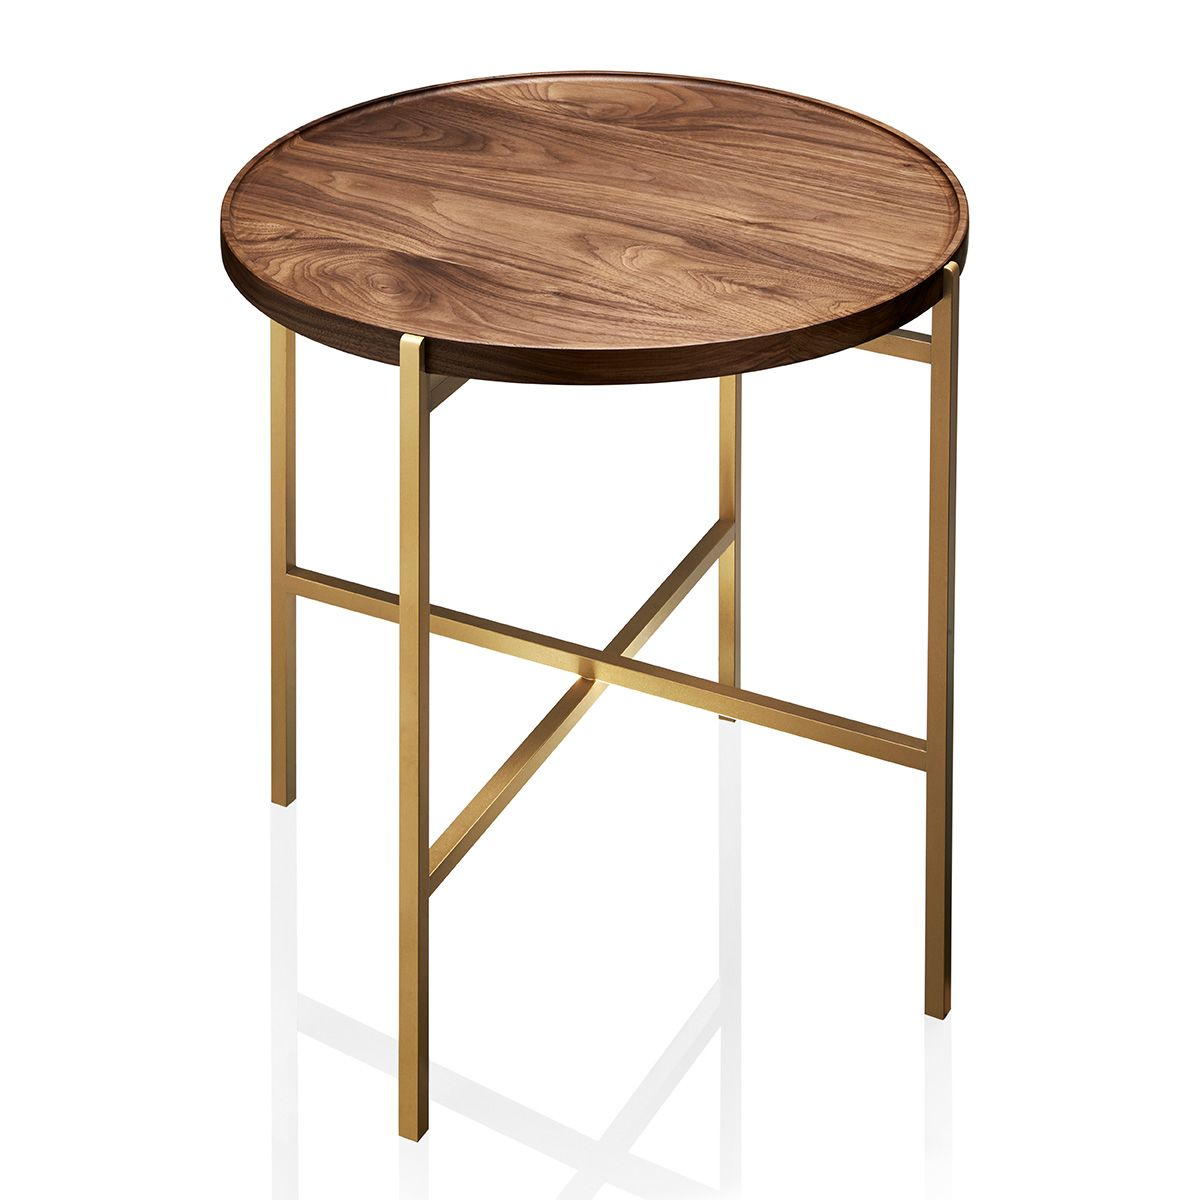 Table Walnut Wood 1a Web Jpg Side Table Table Side Table Design